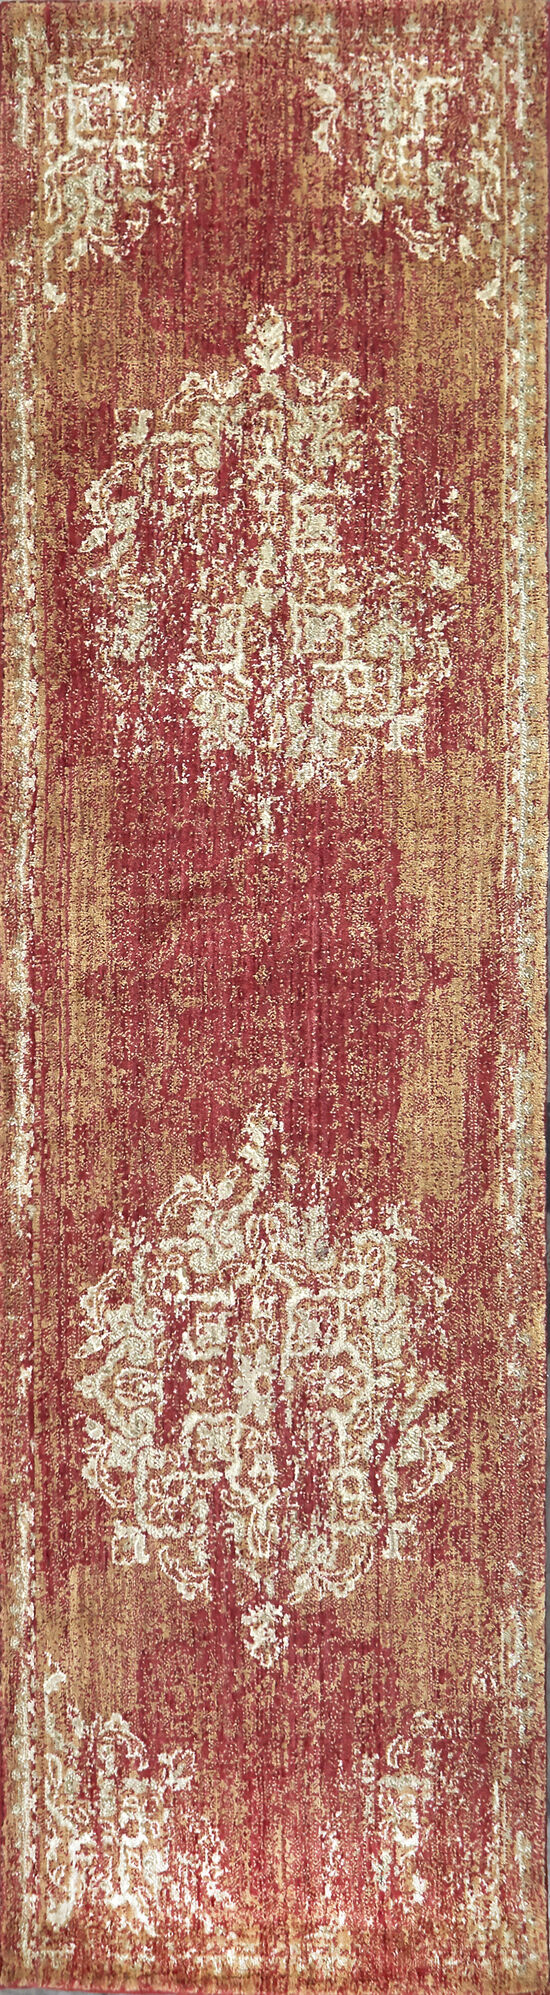 Transitional Power-Loomed 5 x 8 Rectangle Rug in Red